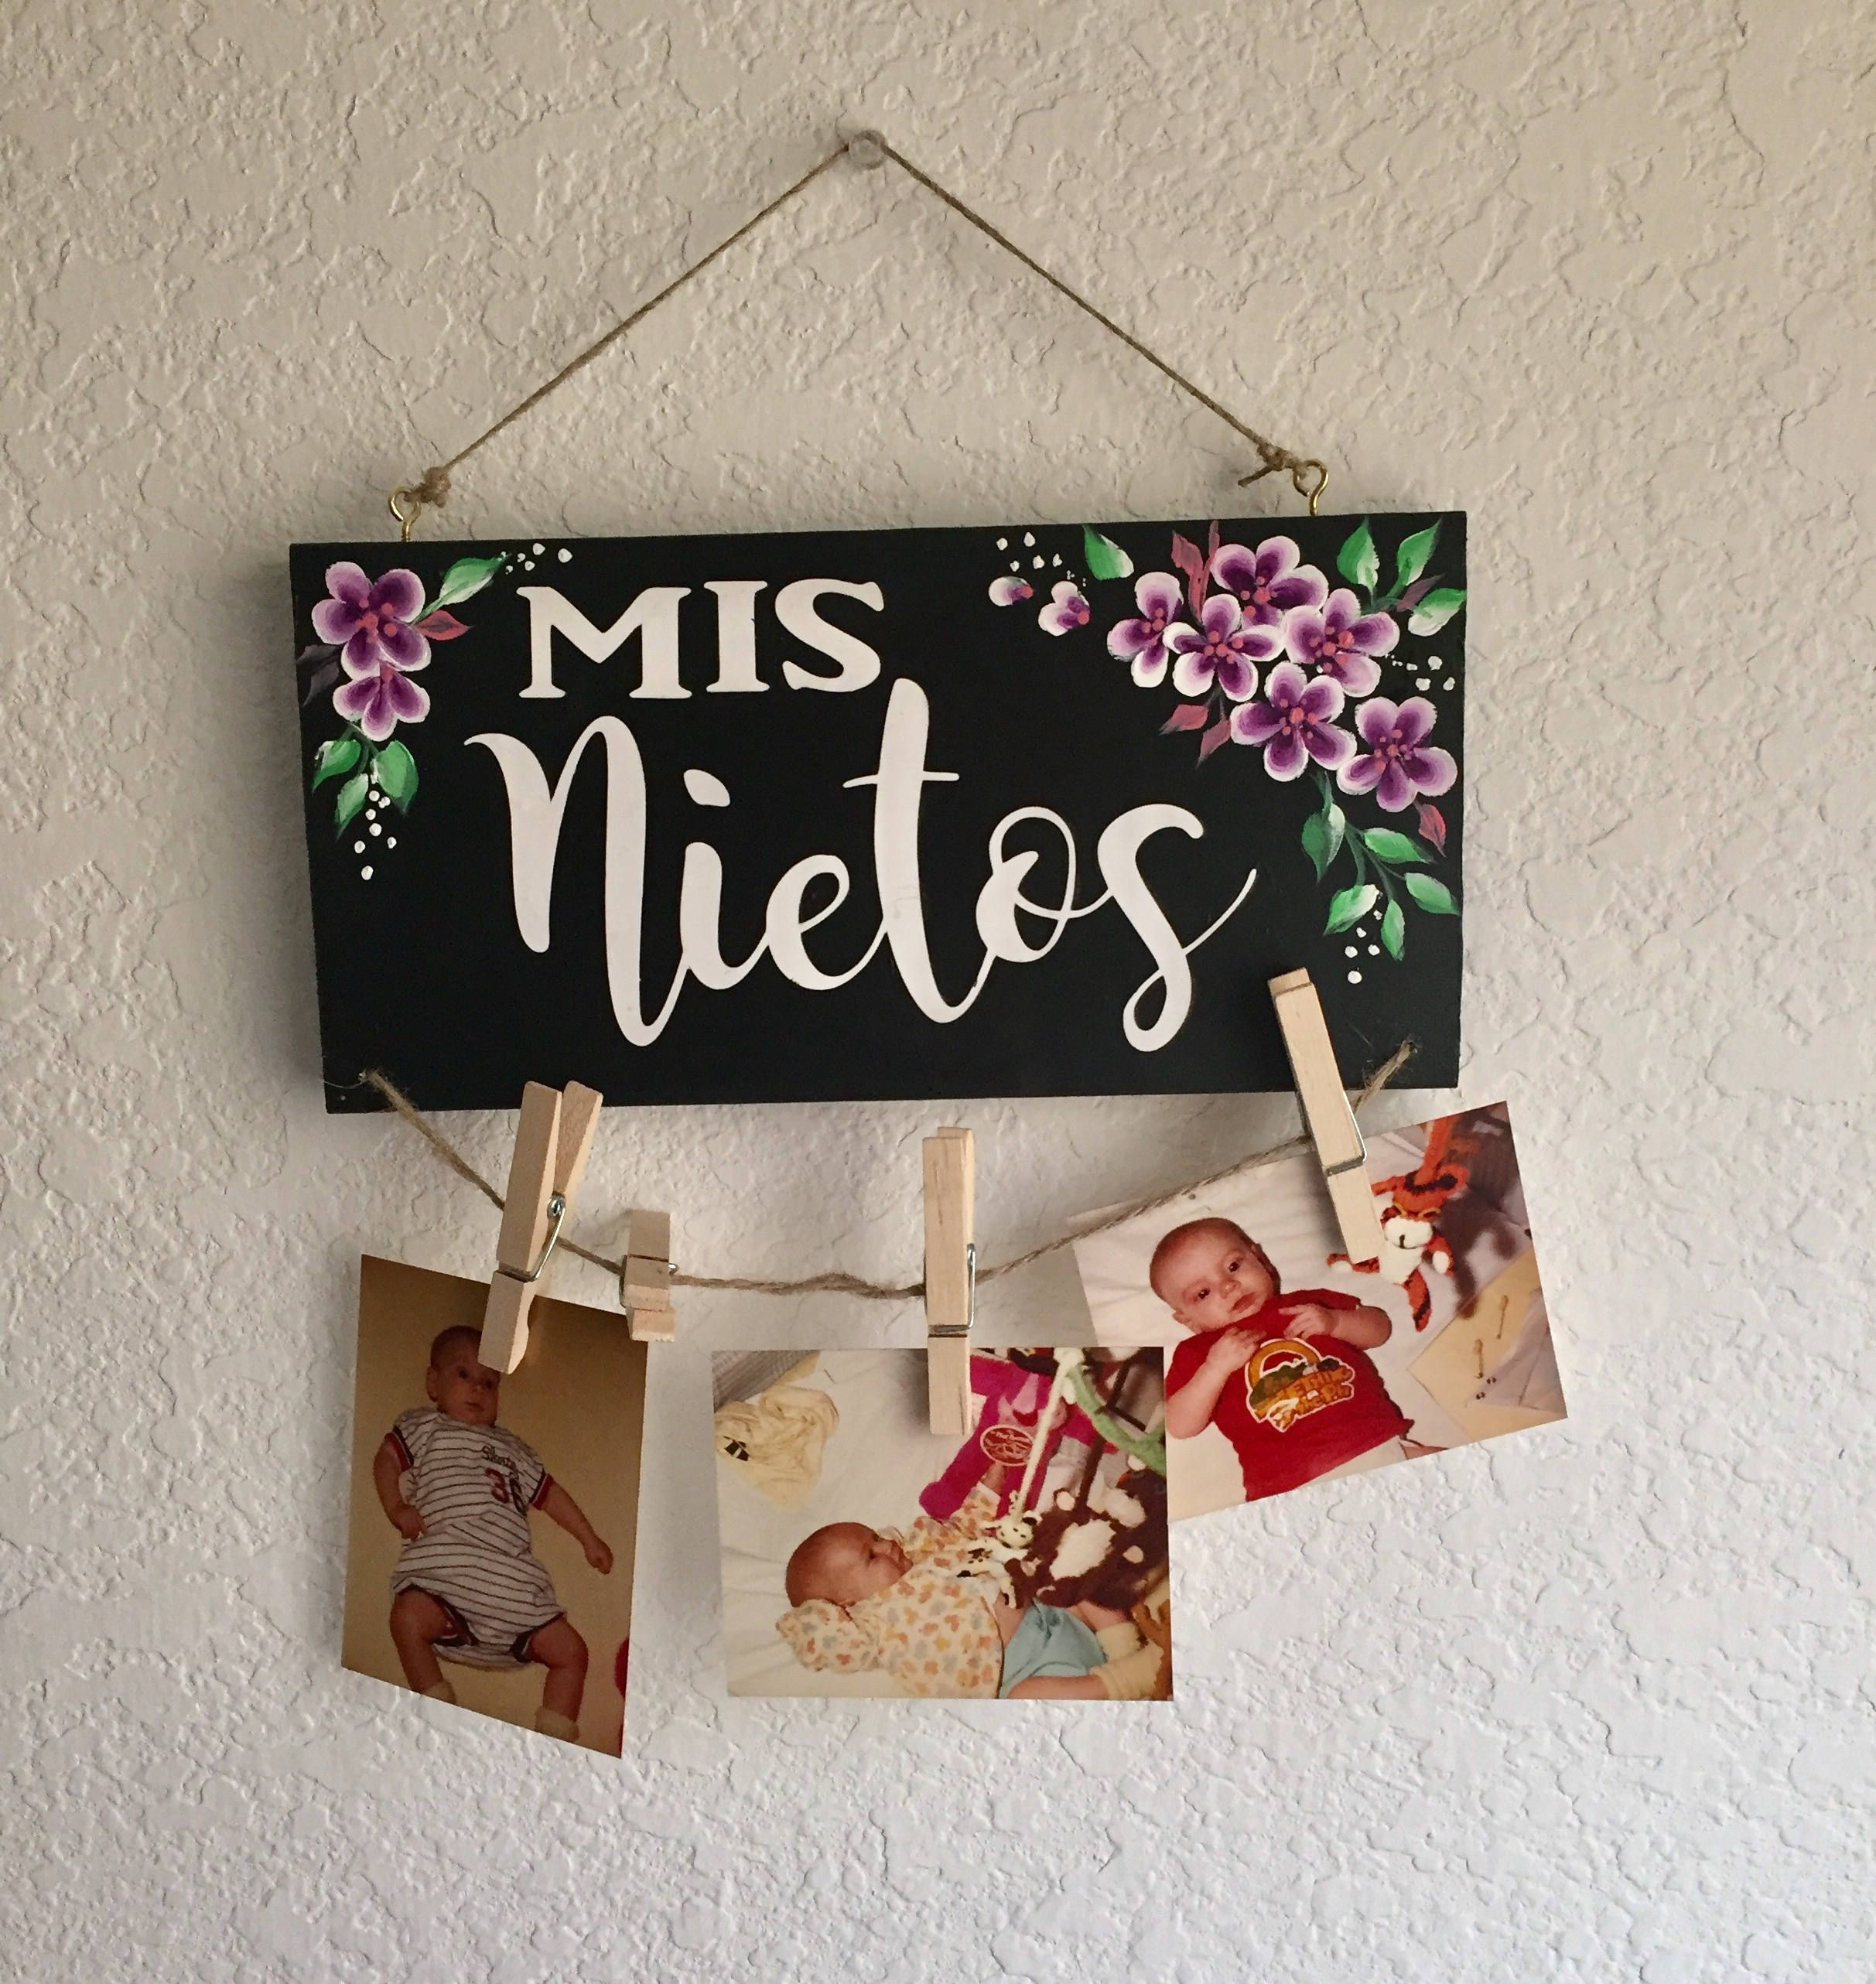 Mis Nietos sign,Grandchildren sign,Sign for abuela,Abuela,Abuelos,Grandparents gift,Grandmother sign,Mothers Day gift,Regalos para Abuelos